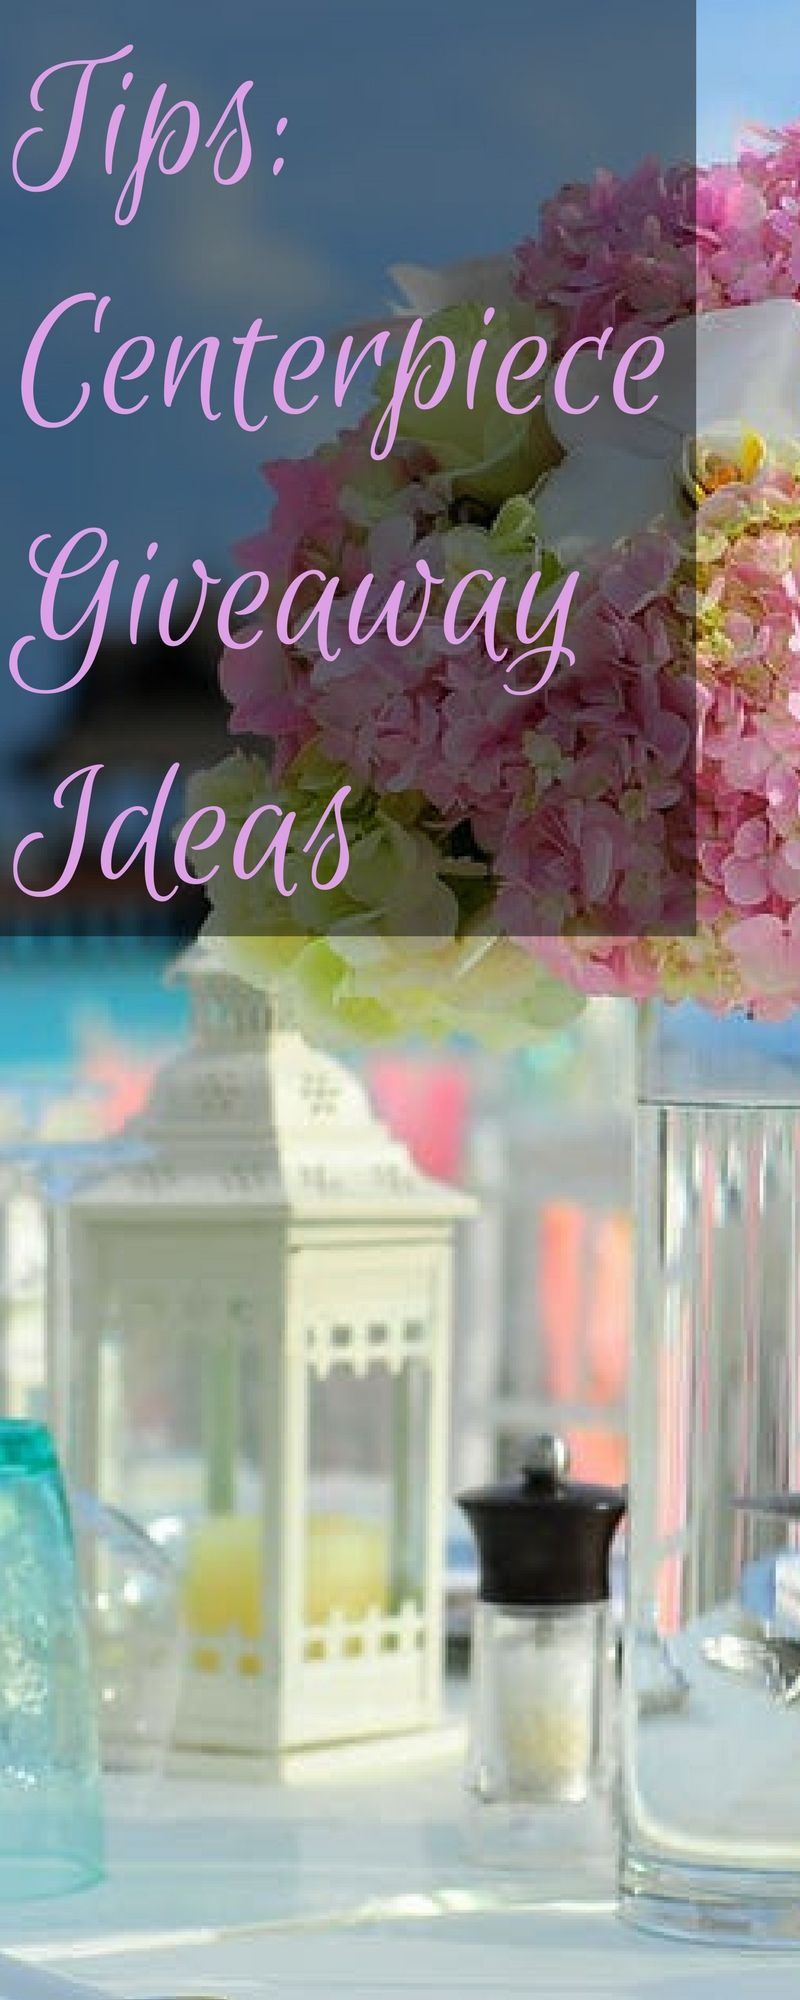 Tips centerpiece giveaway ideas wedding 101 pinterest centerpieces are one of the key elements in your wedding decor i thought about what junglespirit Gallery